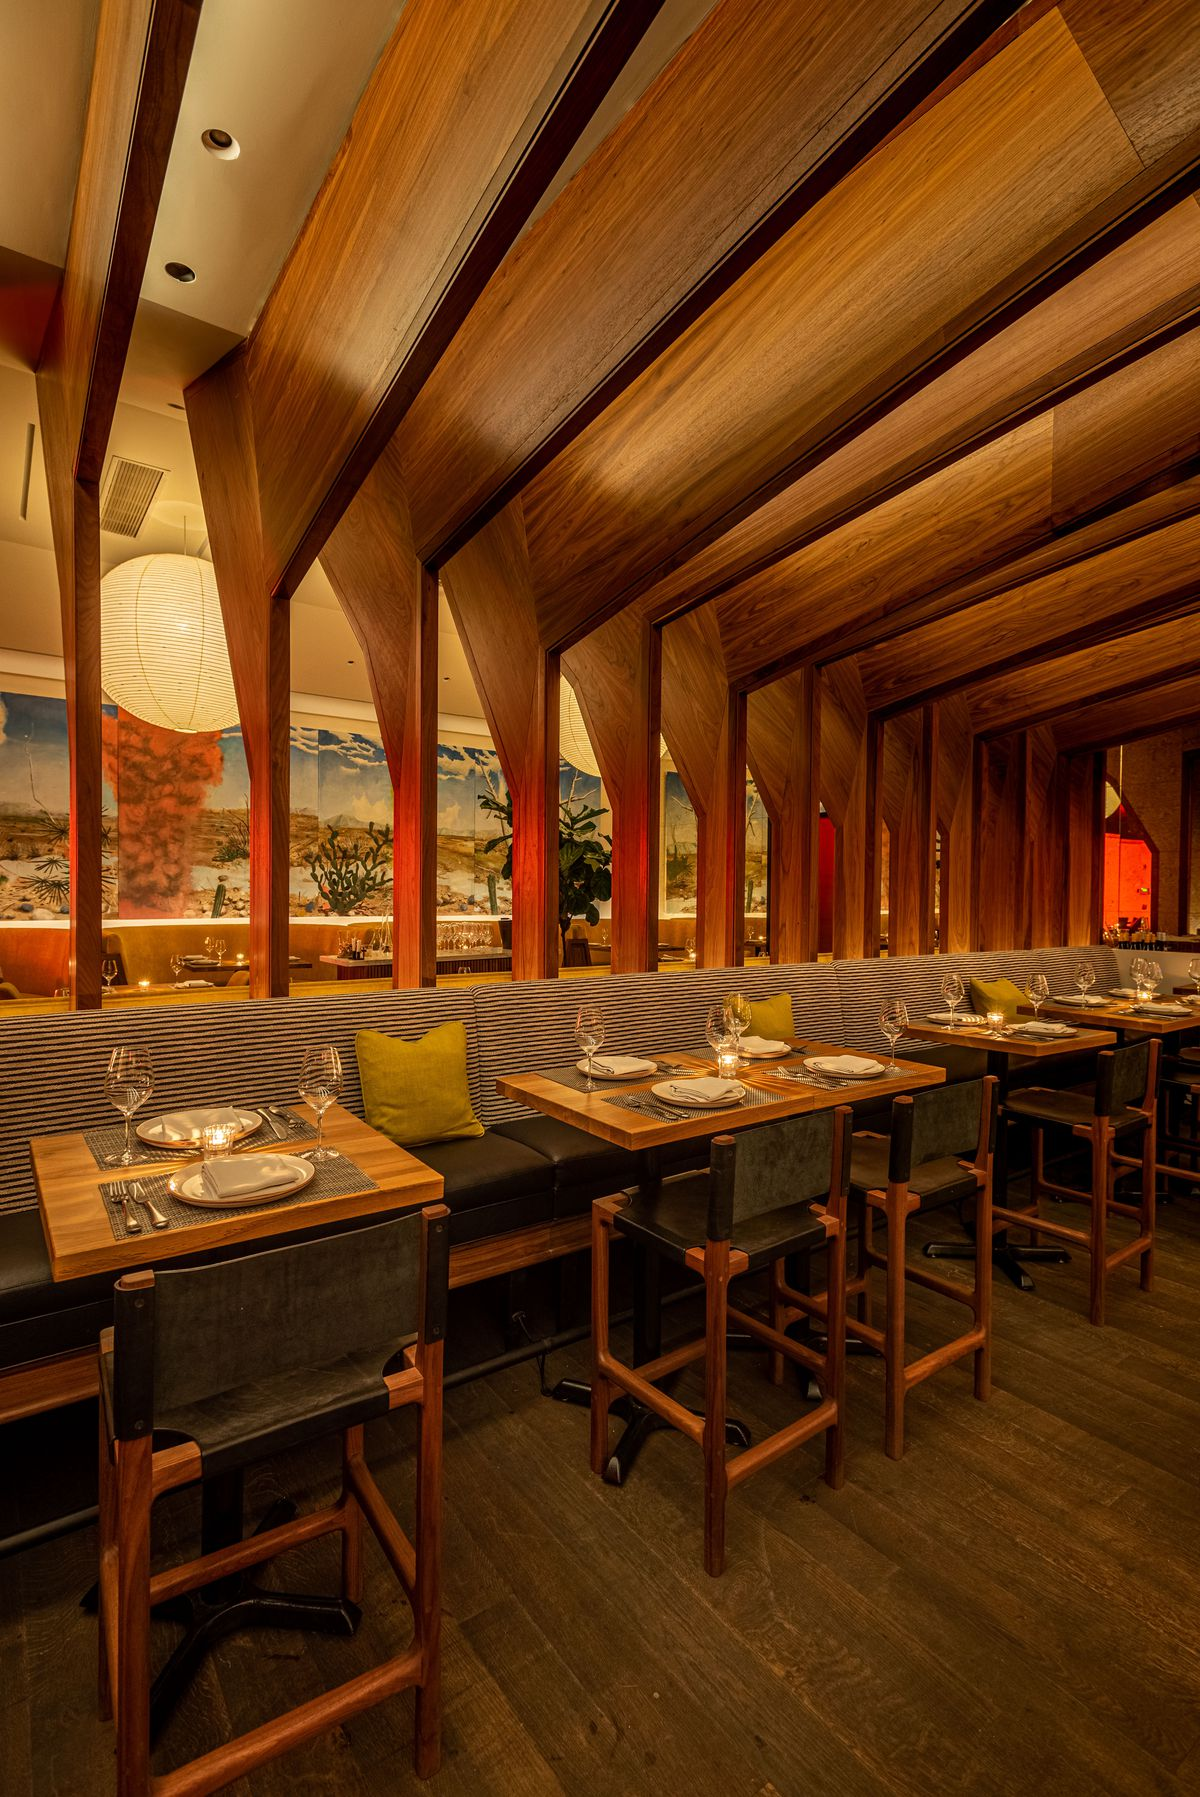 Wooden tables and chairs in a new restaurant at evening.